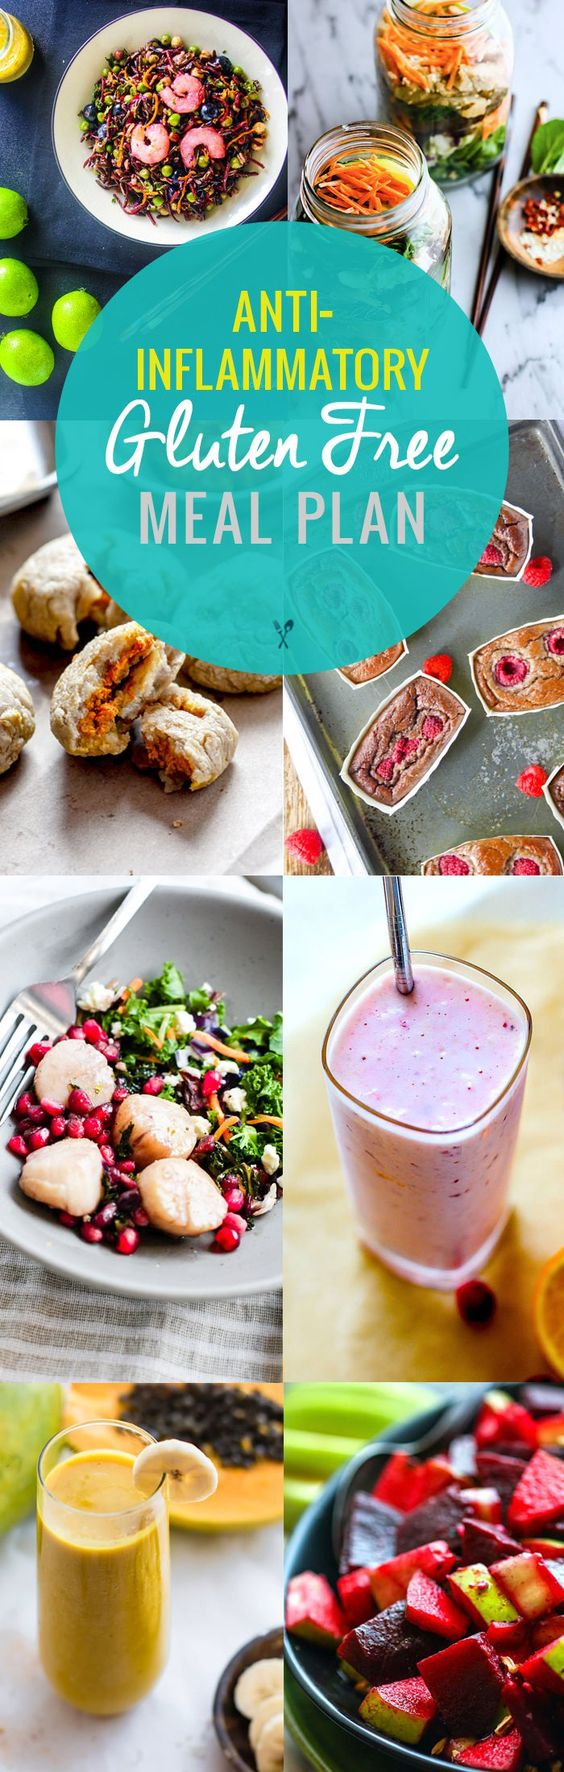 Food plays an key role in reducing inflammation in the body! Here's a gluten free and grain free meal plan full of recipes that are not only delicious, but also include foods that are known for their anti-inflammatory properties. @cottercrunch